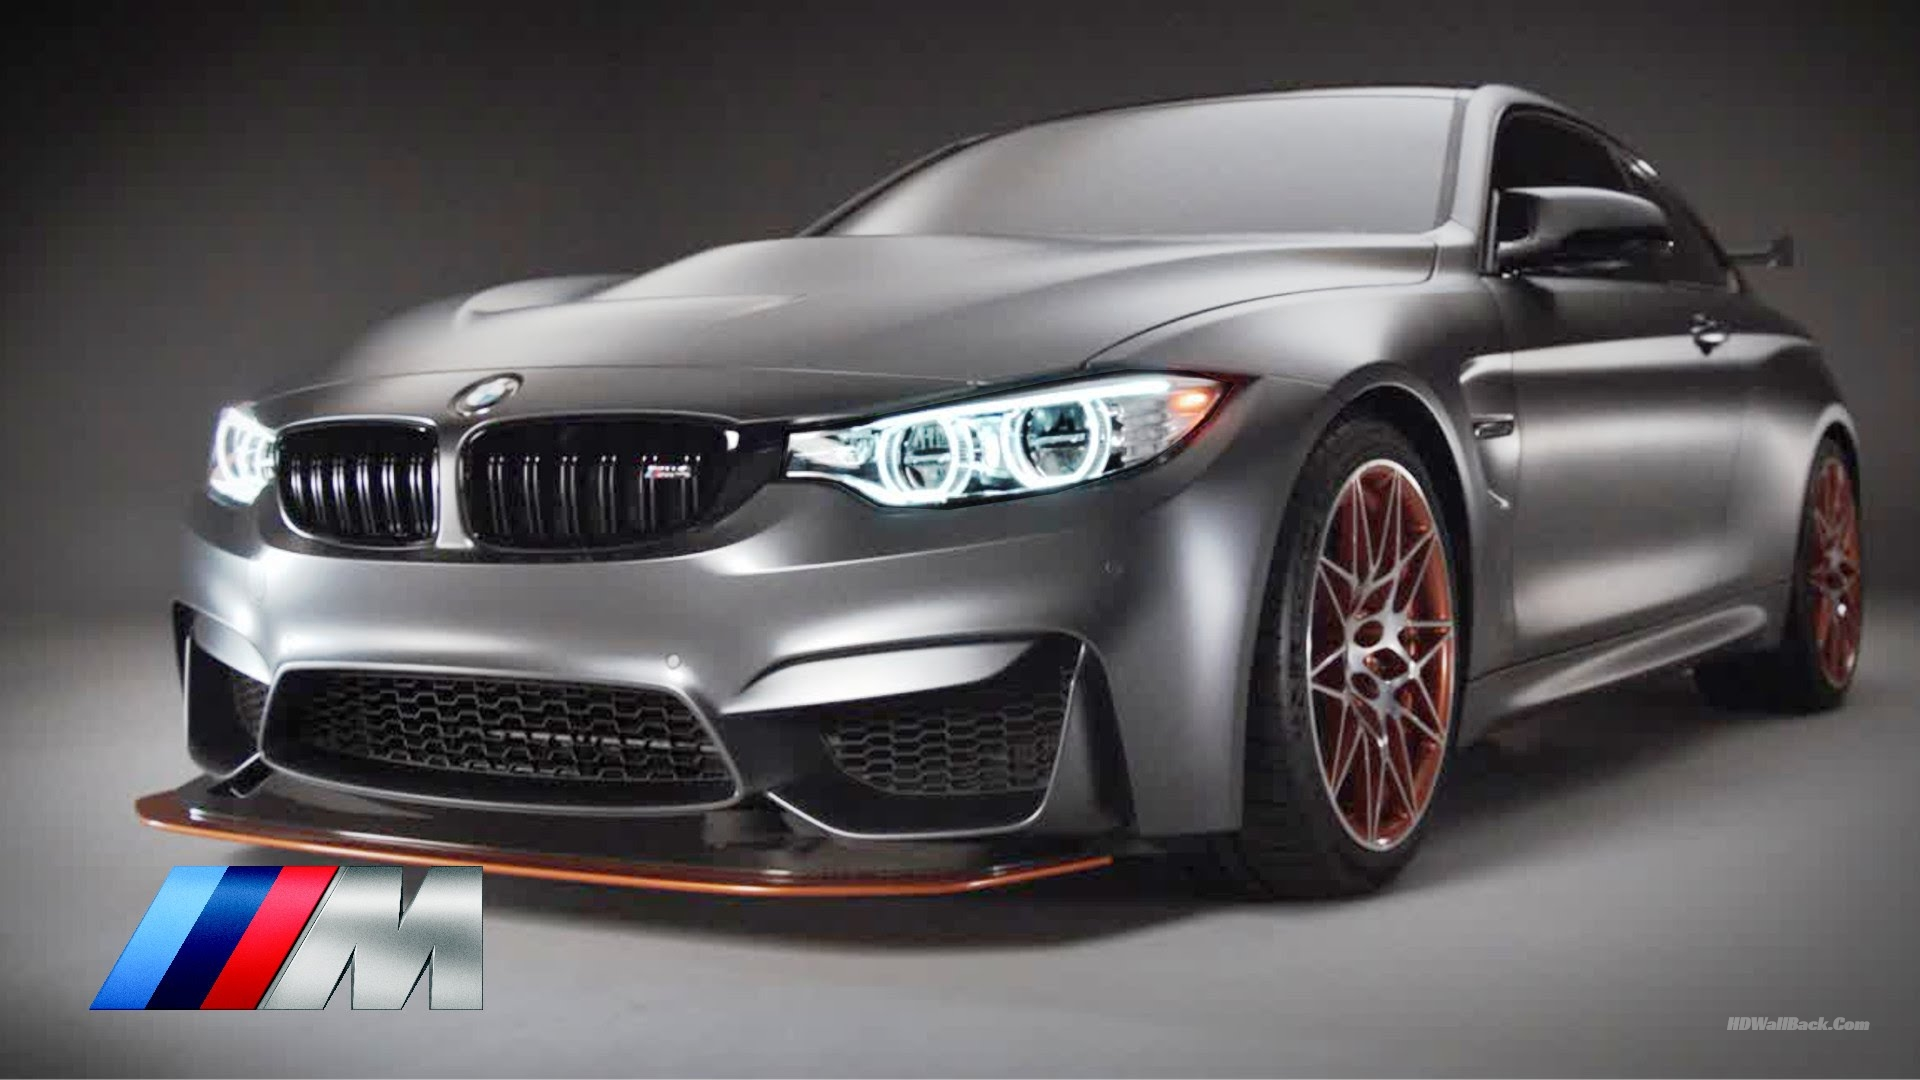 BMW M4 GTS CONCEPT - HD Wallpapers , HD Backgrounds,Tumblr ...